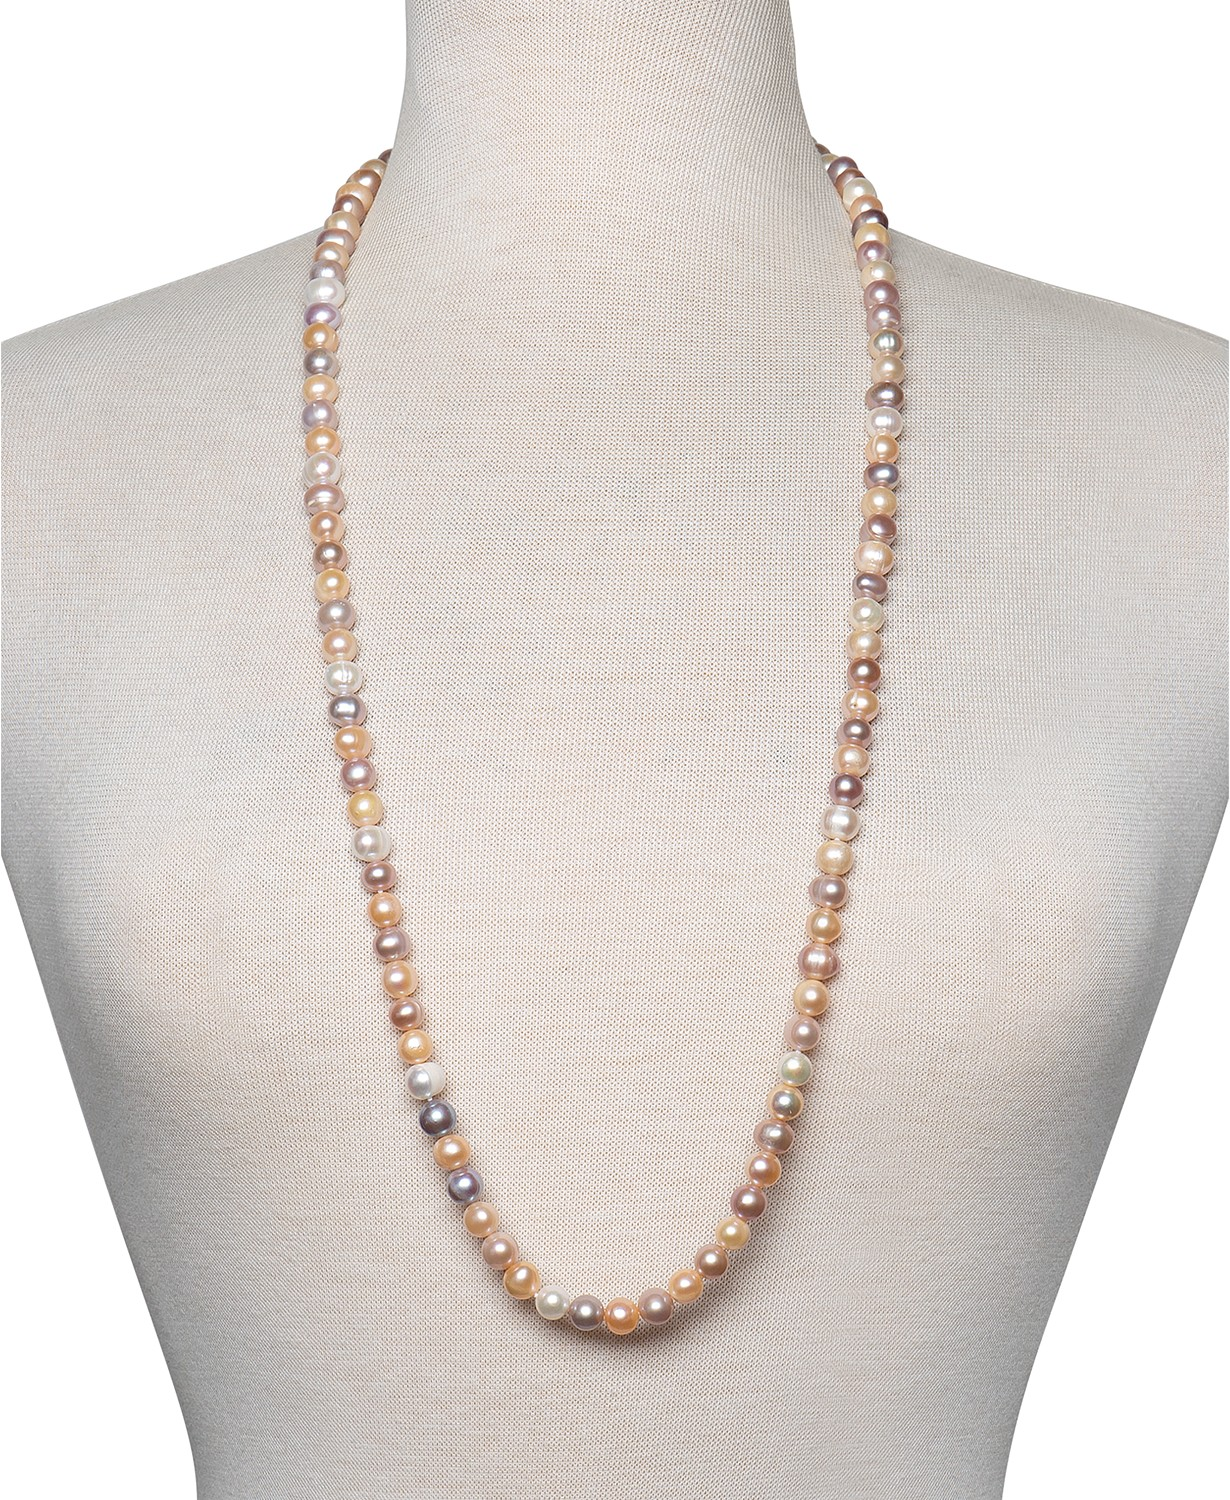 (70% OFF Coupon) Genuine Pearl Necklace 36″ Cultured Freshwater Pearl $60.00